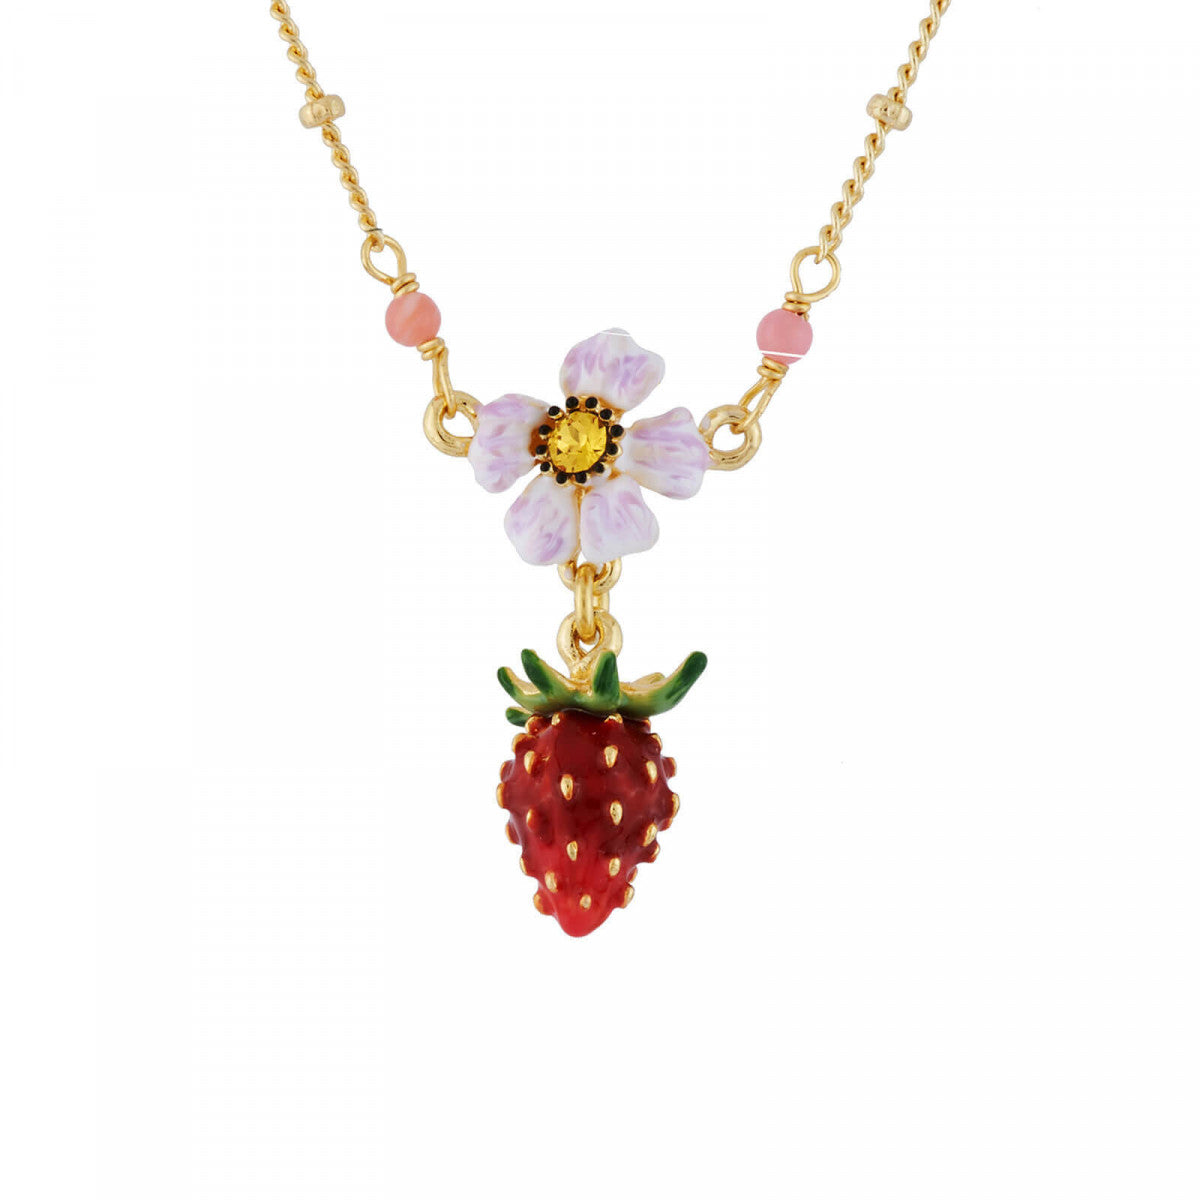 Small Strawberry and White Flower Necklace